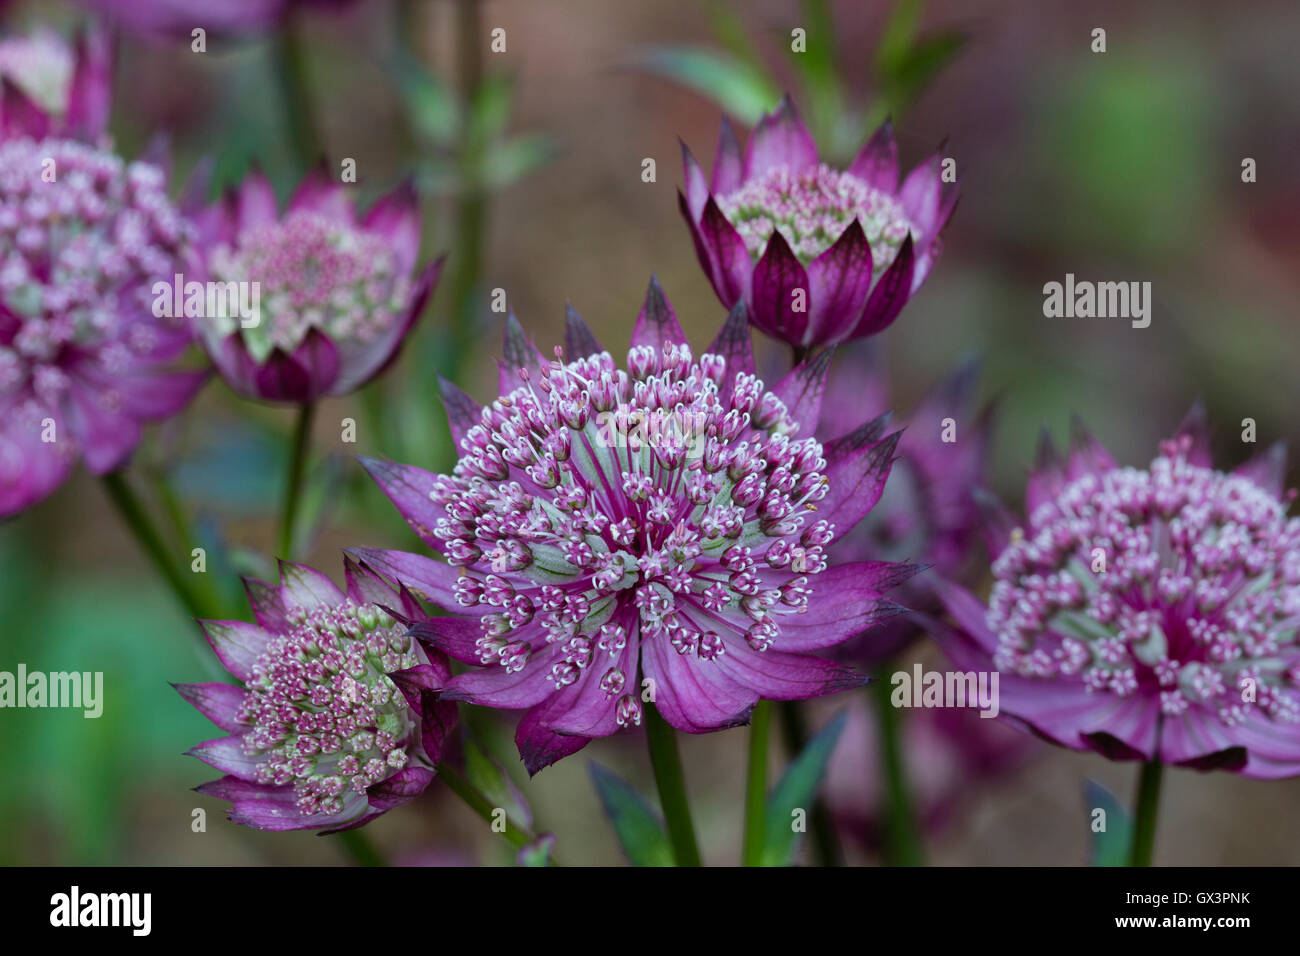 Red pincushion flowers of the hardy perennial masterwort, Astrantia major 'Moulin Rouge' - Stock Image